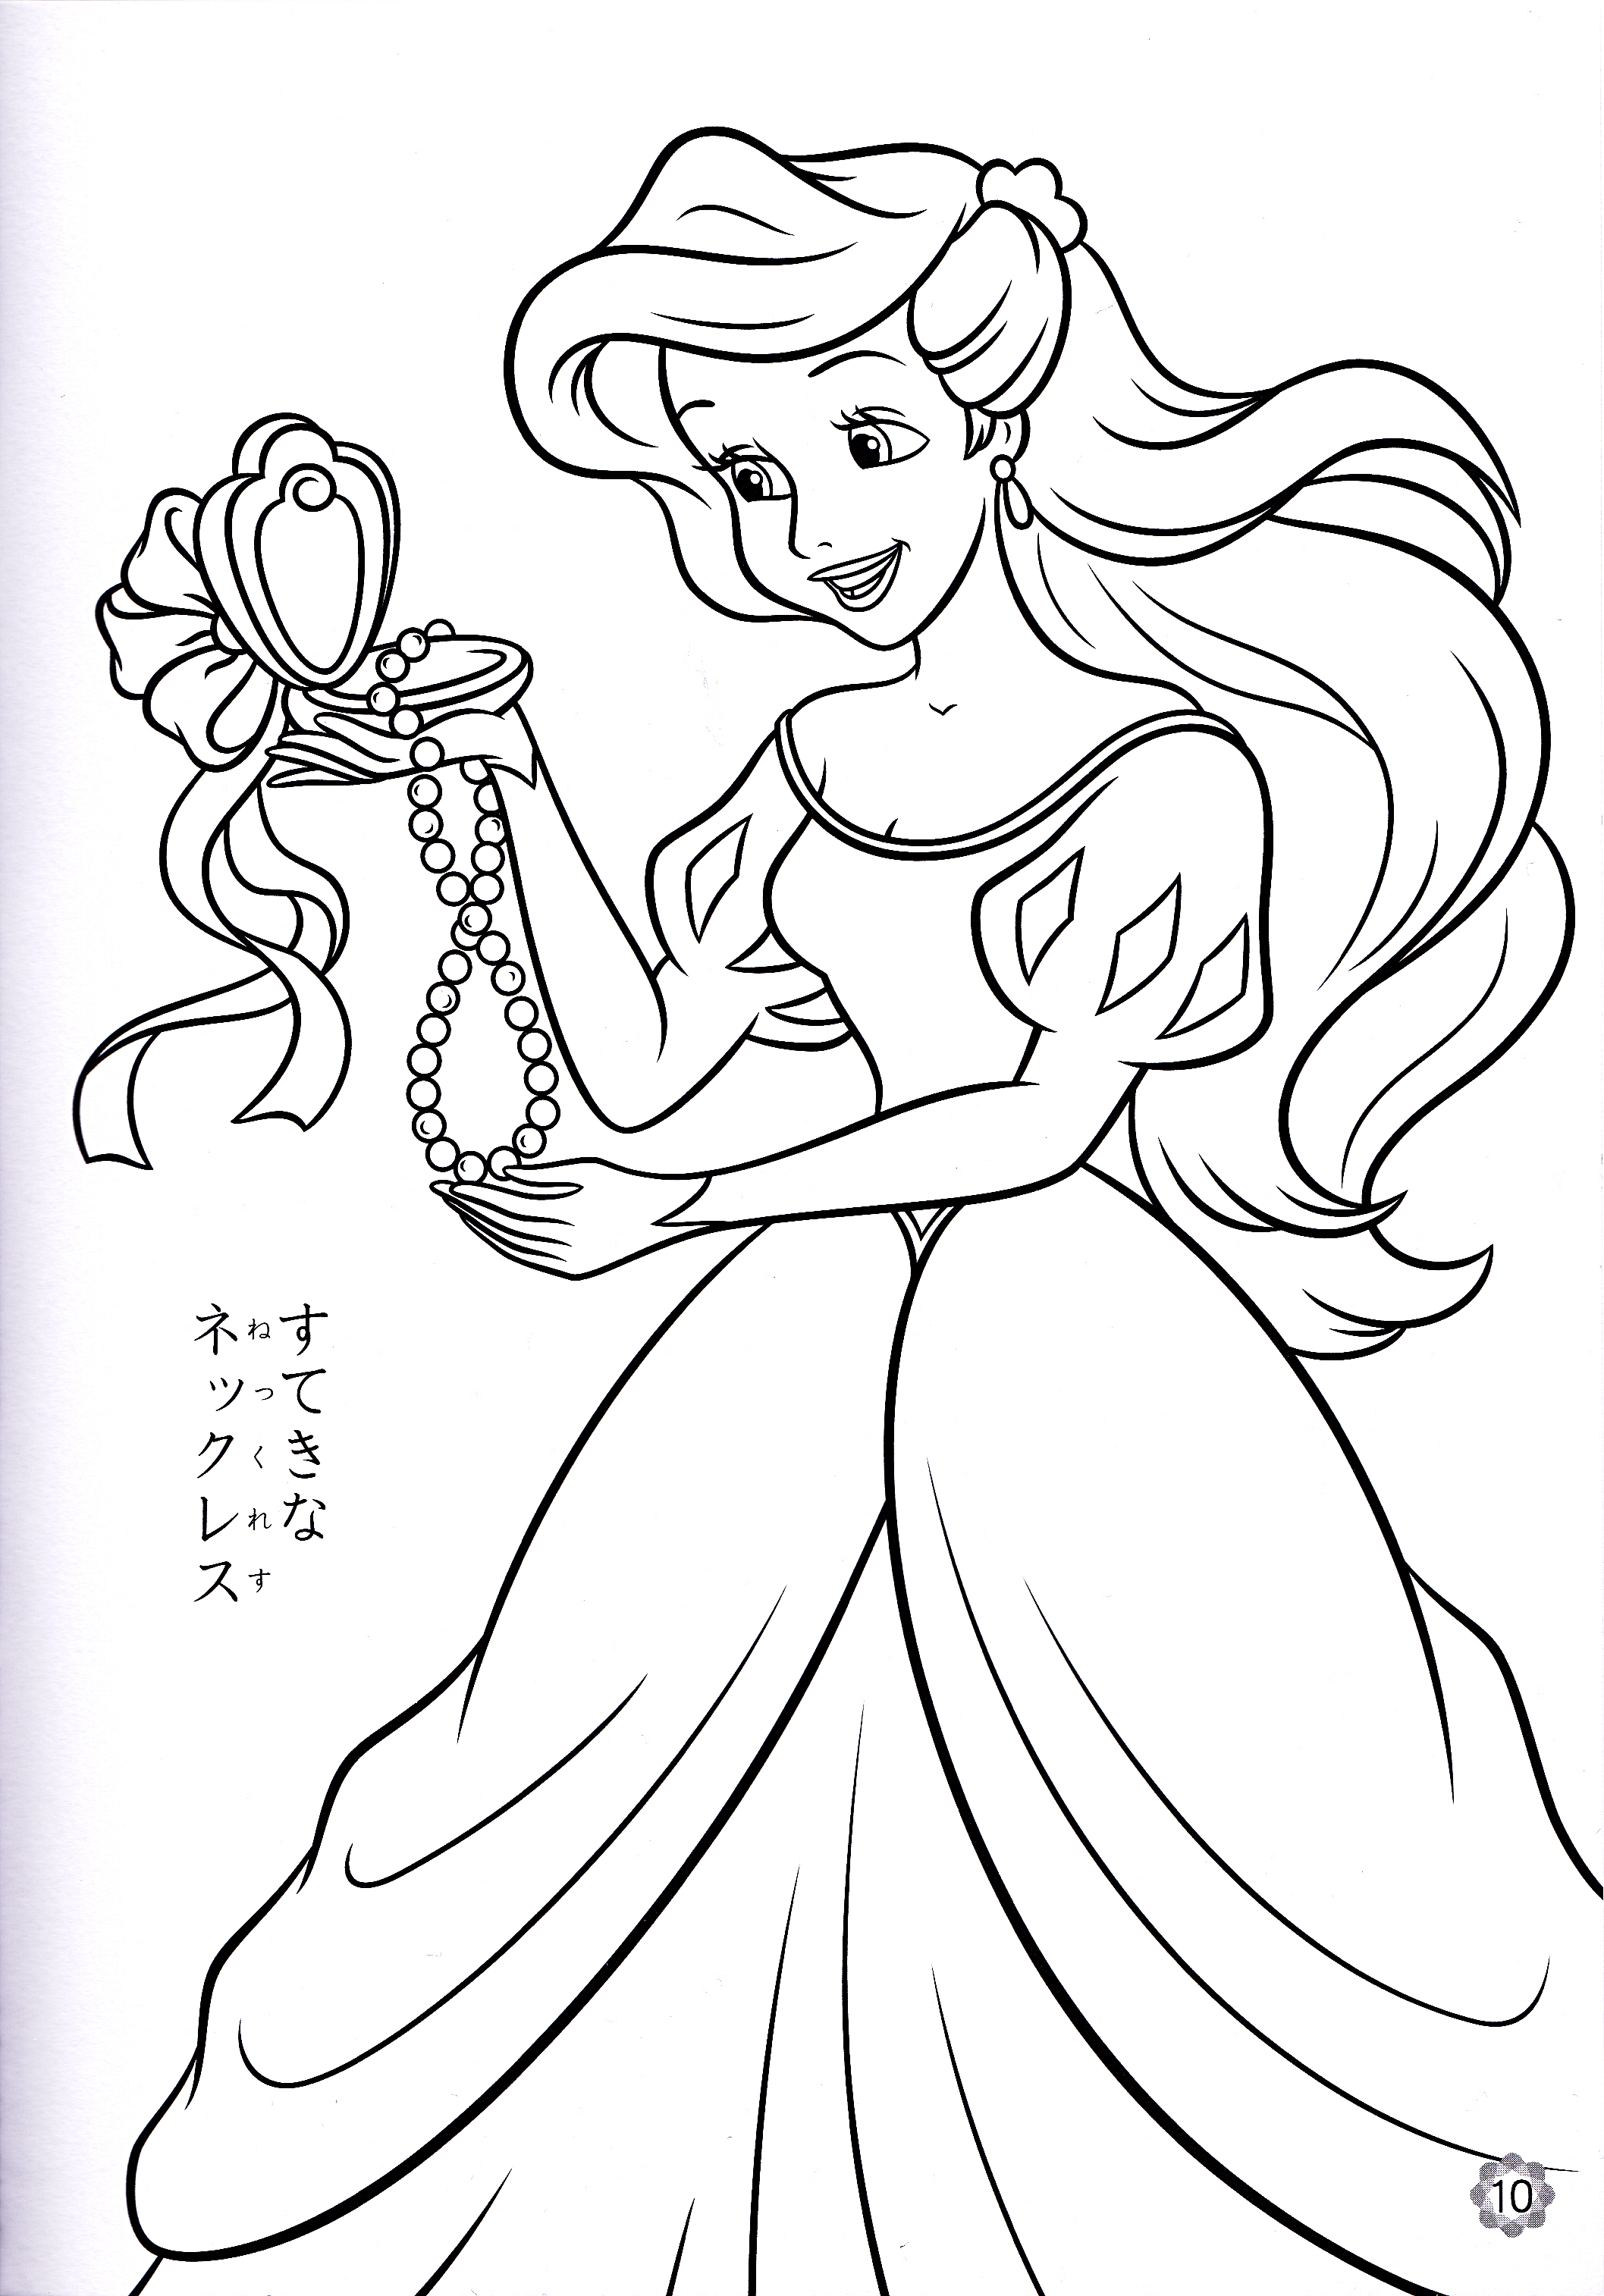 disney princess printable coloring pages - photo#9